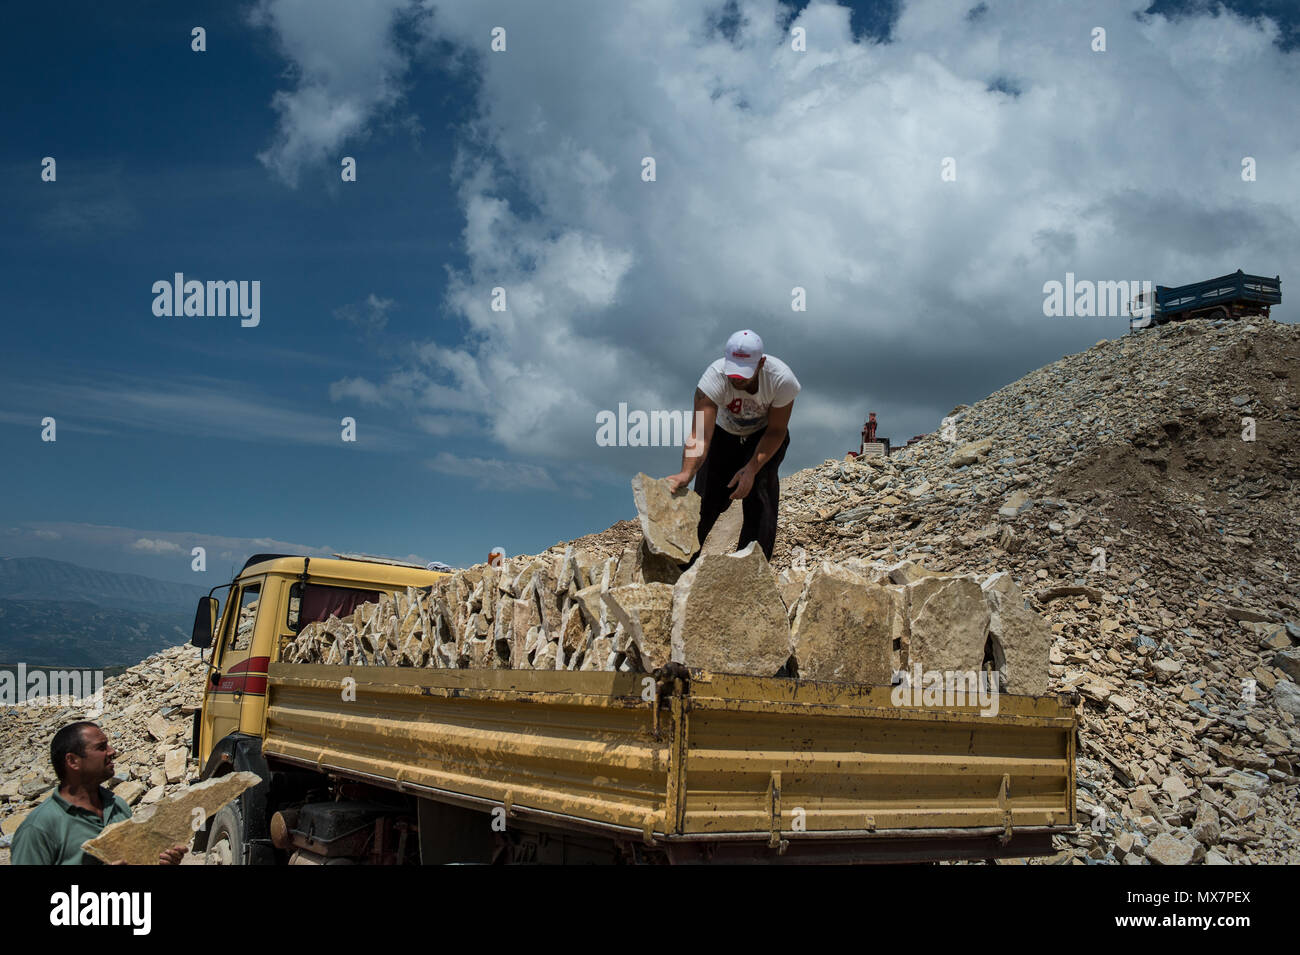 Slate quarries worker, Tomorri Mountain National Park, Berat, Albania, Europe - Stock Image